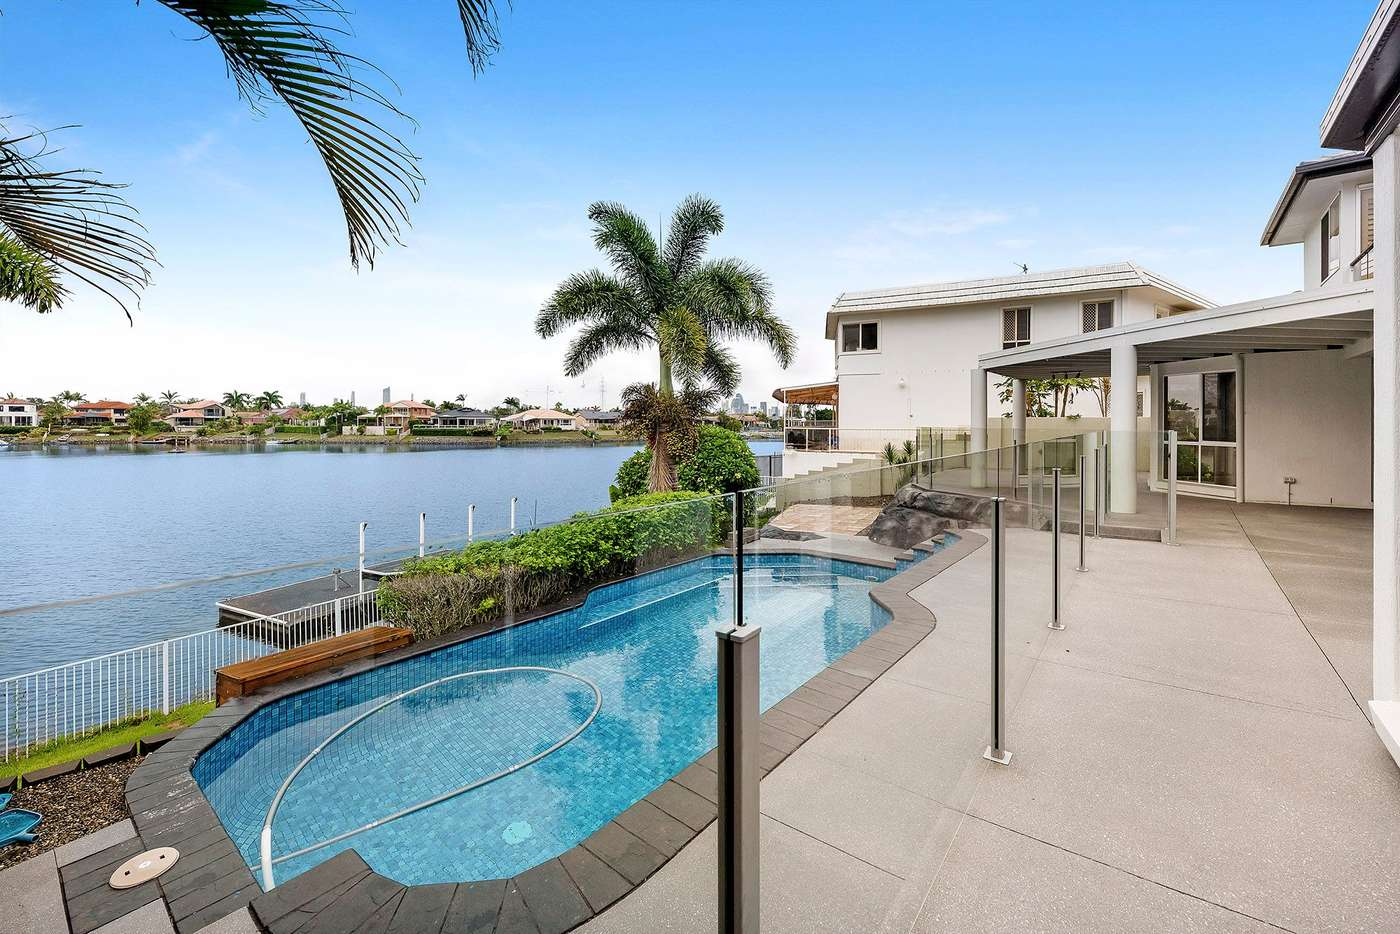 Seventh view of Homely house listing, 156 Port Jackson Boulevard, Clear Island Waters QLD 4226